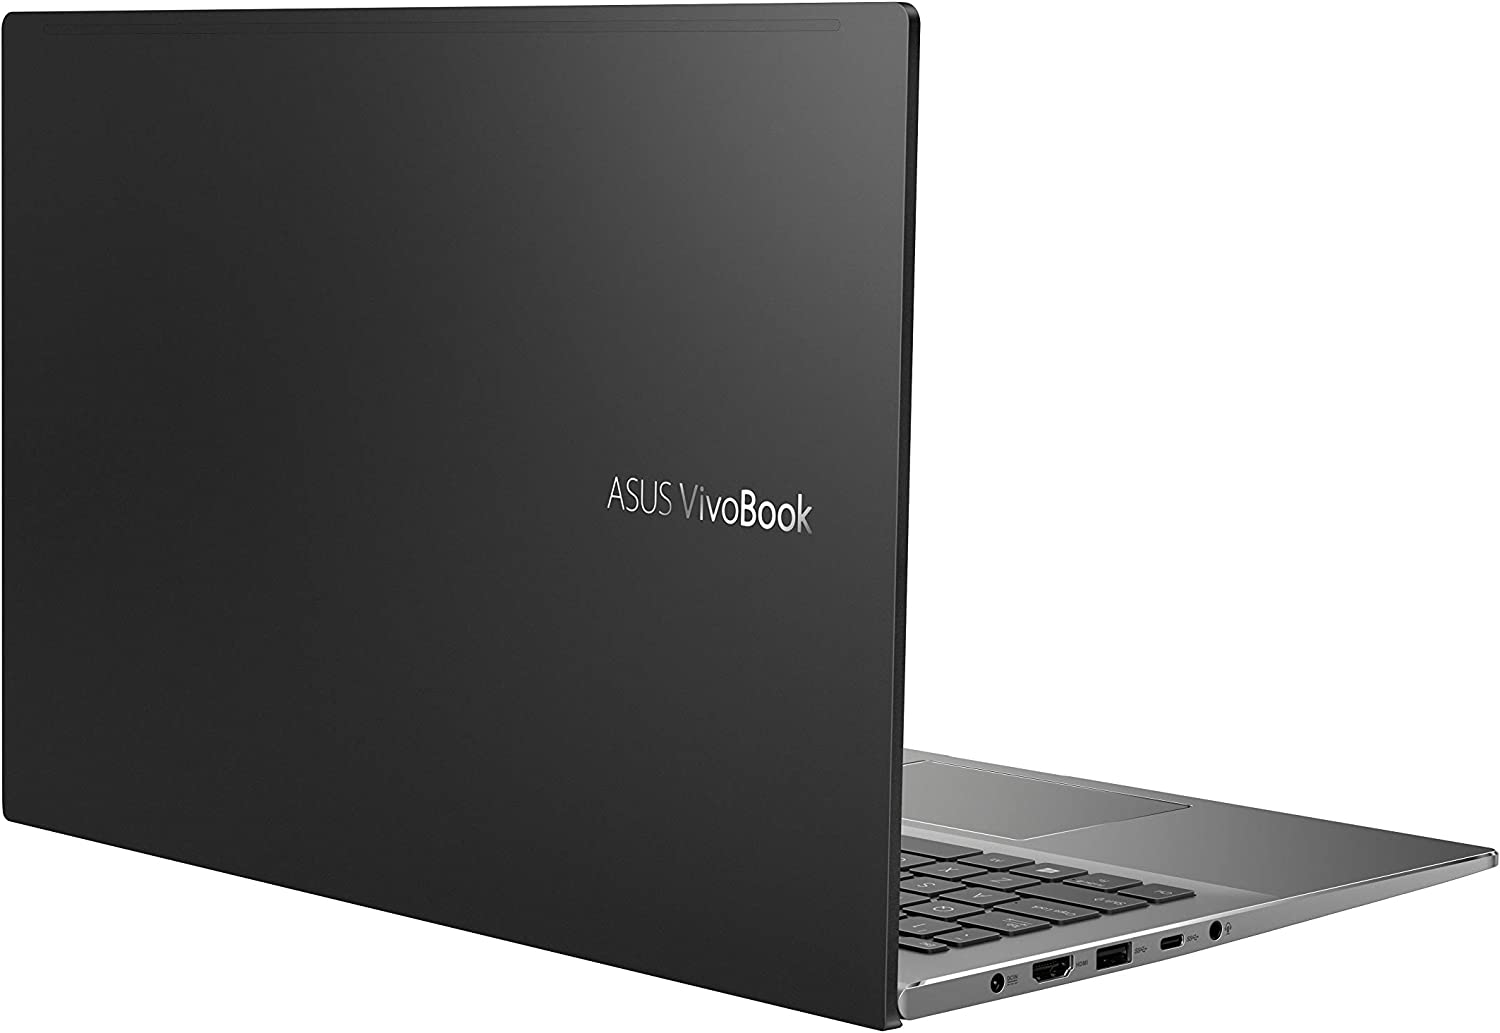 "ASUS VivoBook S15 S533 Thin and Light Laptop, 15.6"" FHD Display, Intel Core i7-10510U CPU, 16GB DDR4 RAM, 512GB PCIe SSD, Fingerprint Reader, Windows 10 Home, Indie Black, S533FA-DS74"